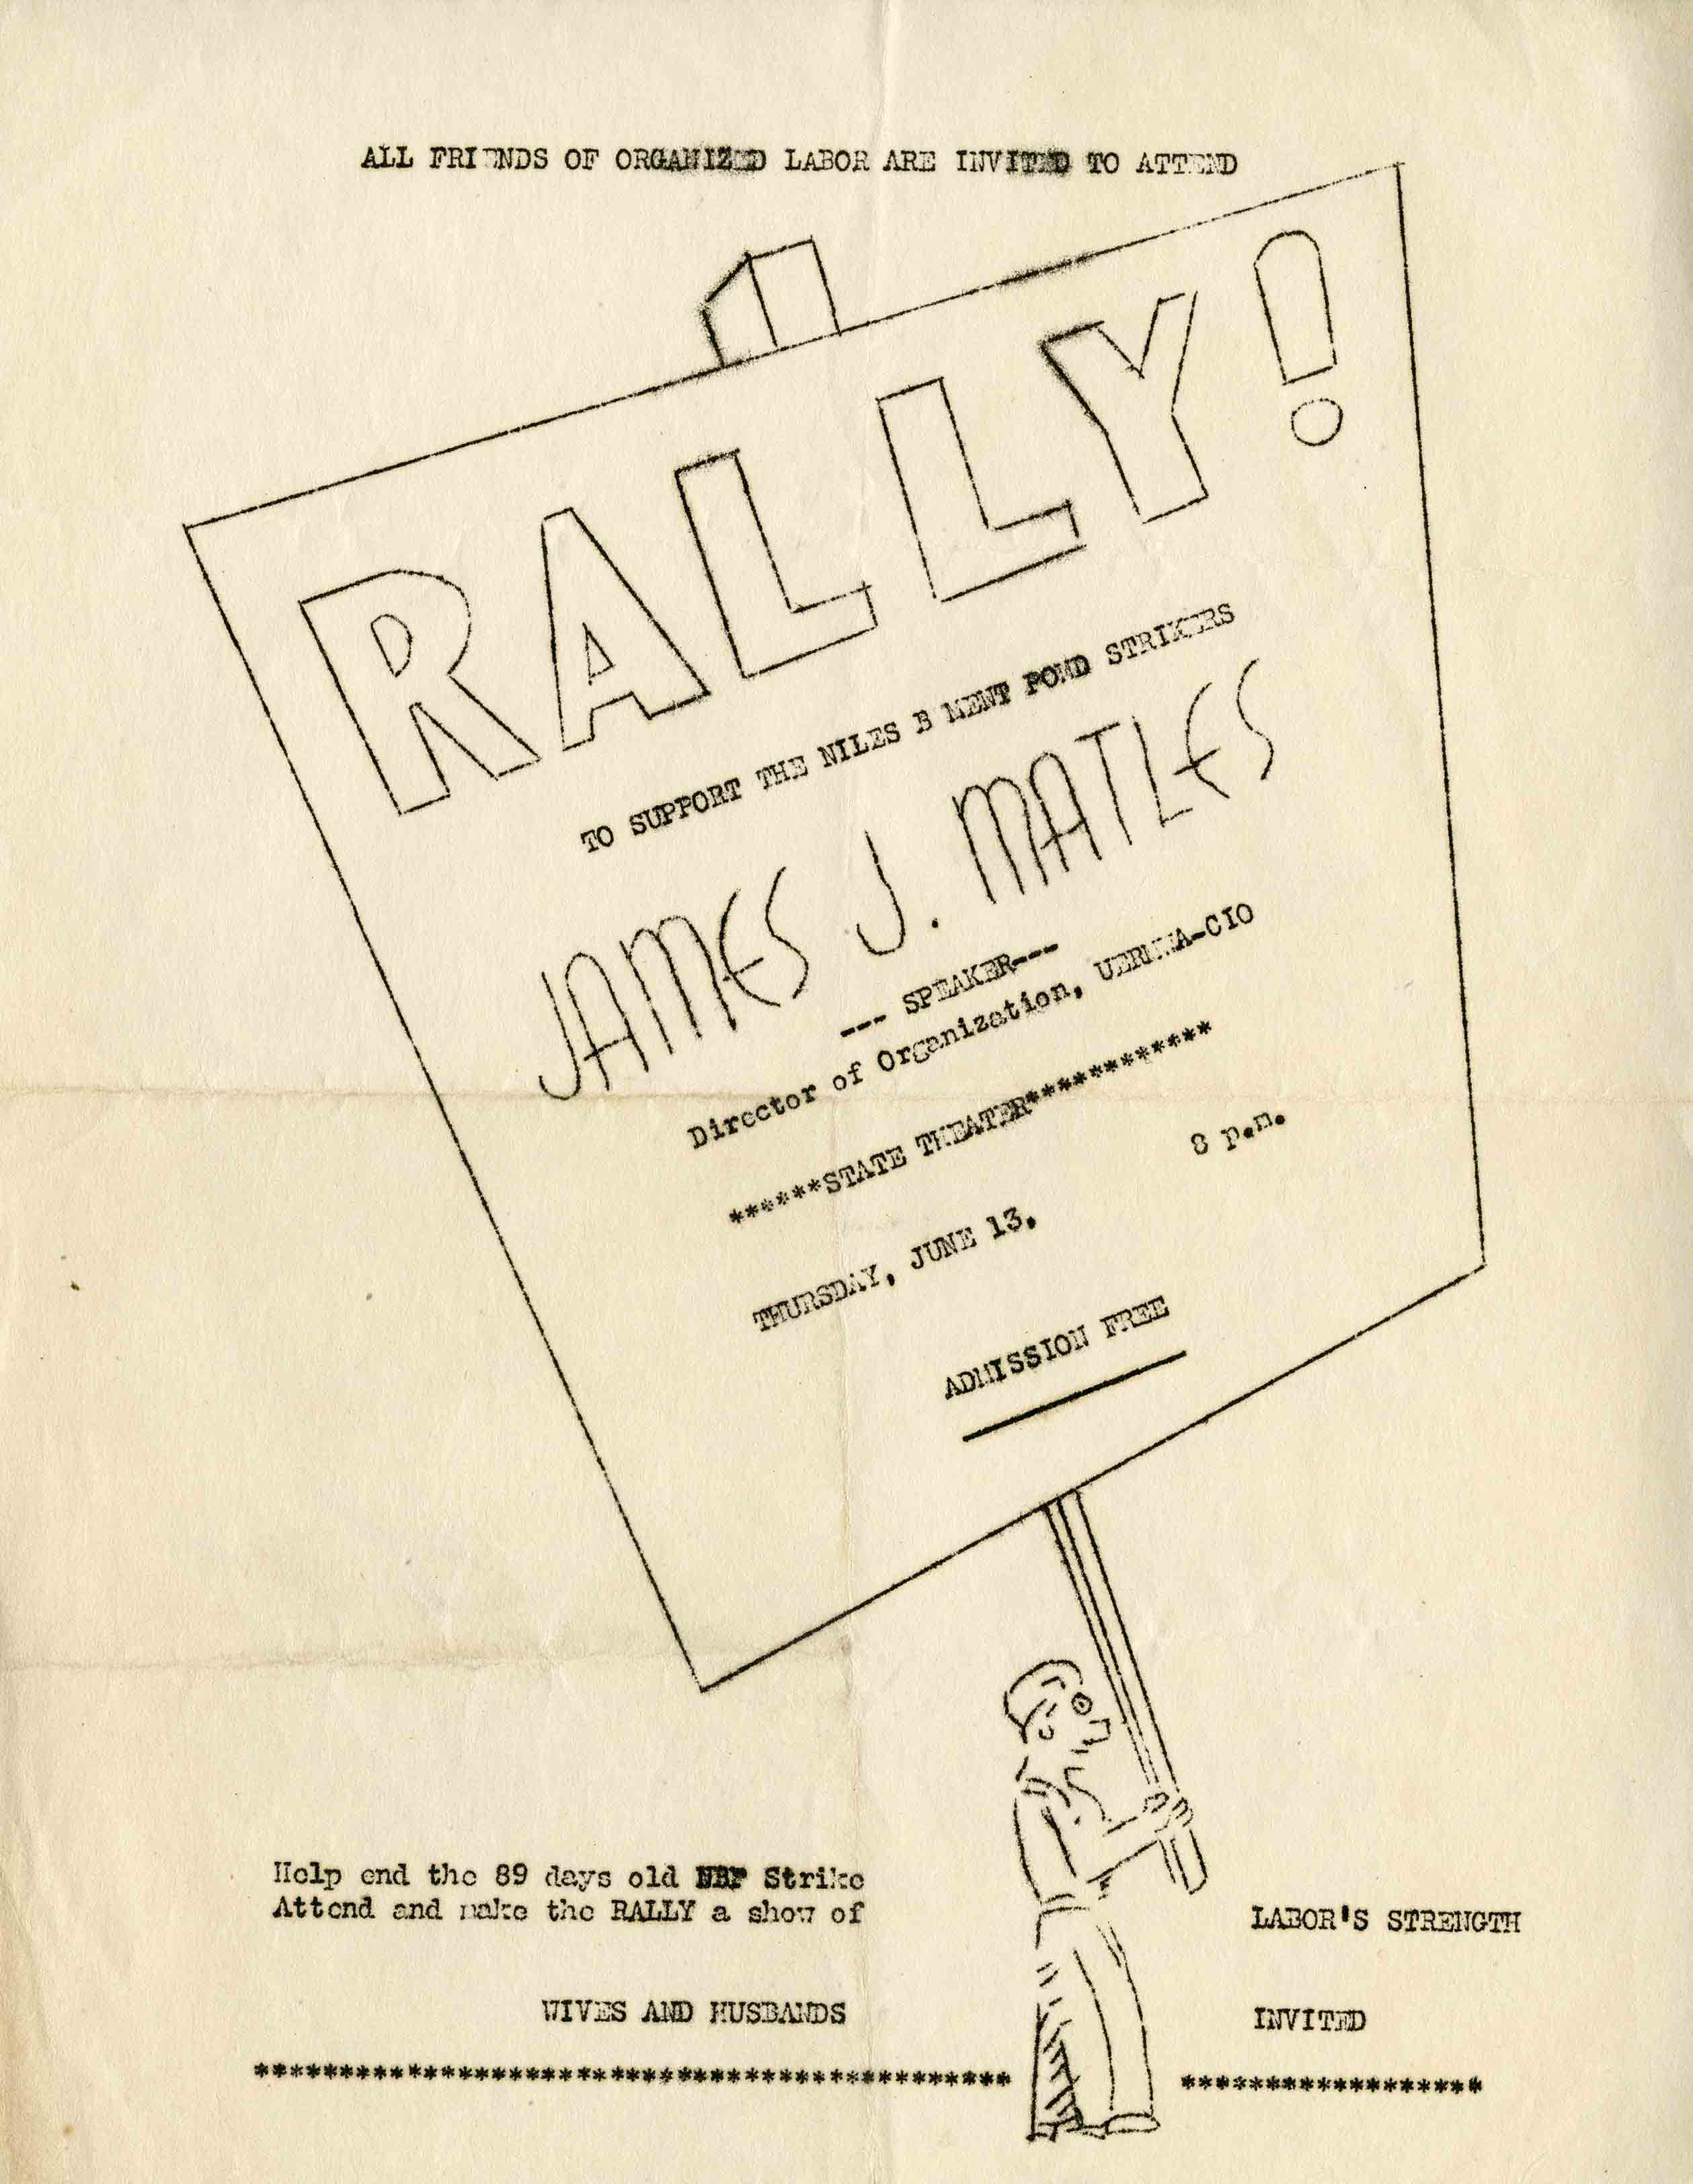 Rallye flyer from the Henry Stieg Collection, 1946